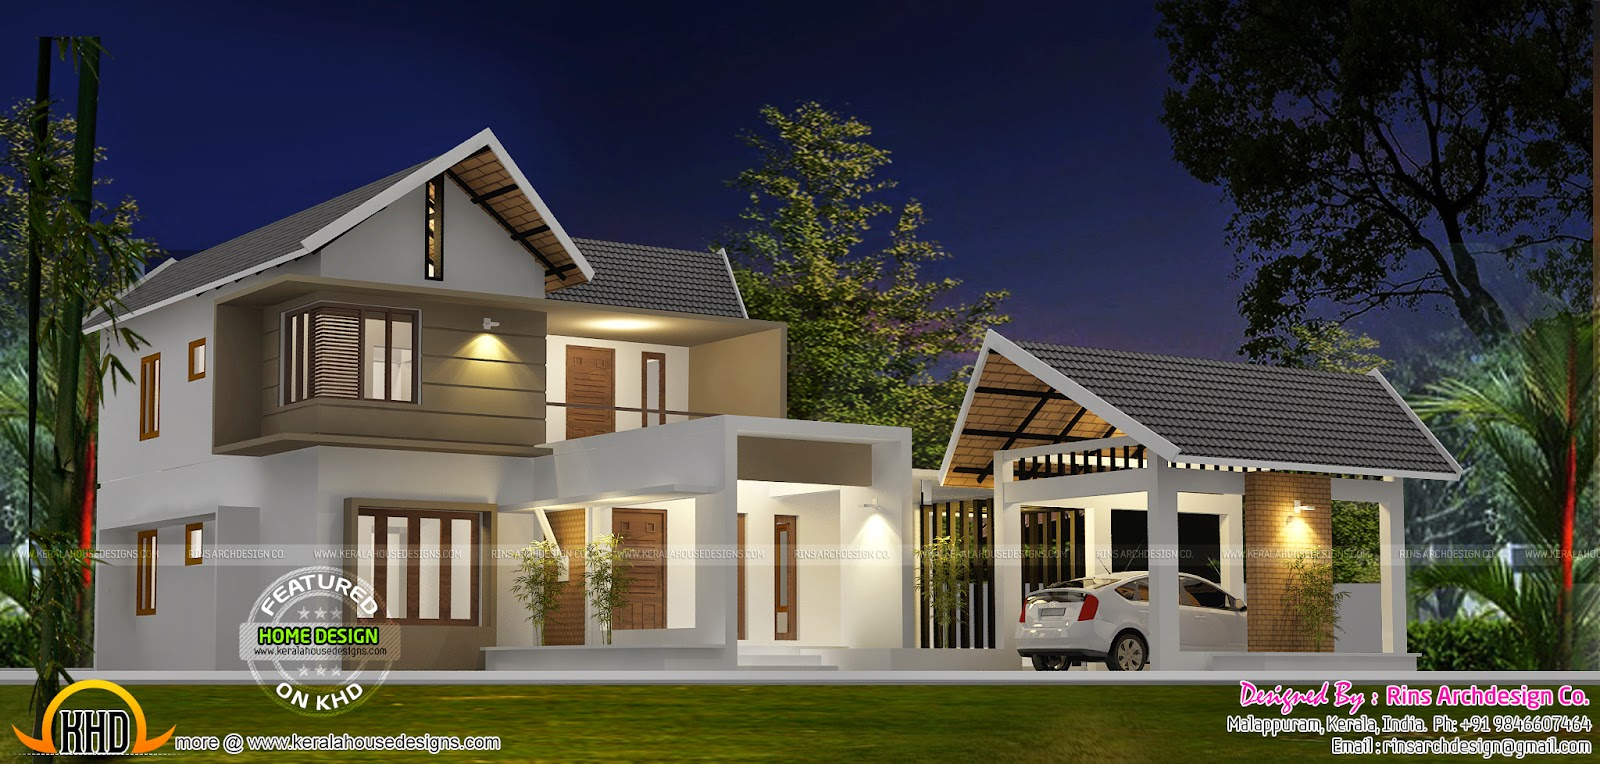 separate garage house plan kerala home design and floor On separate garage